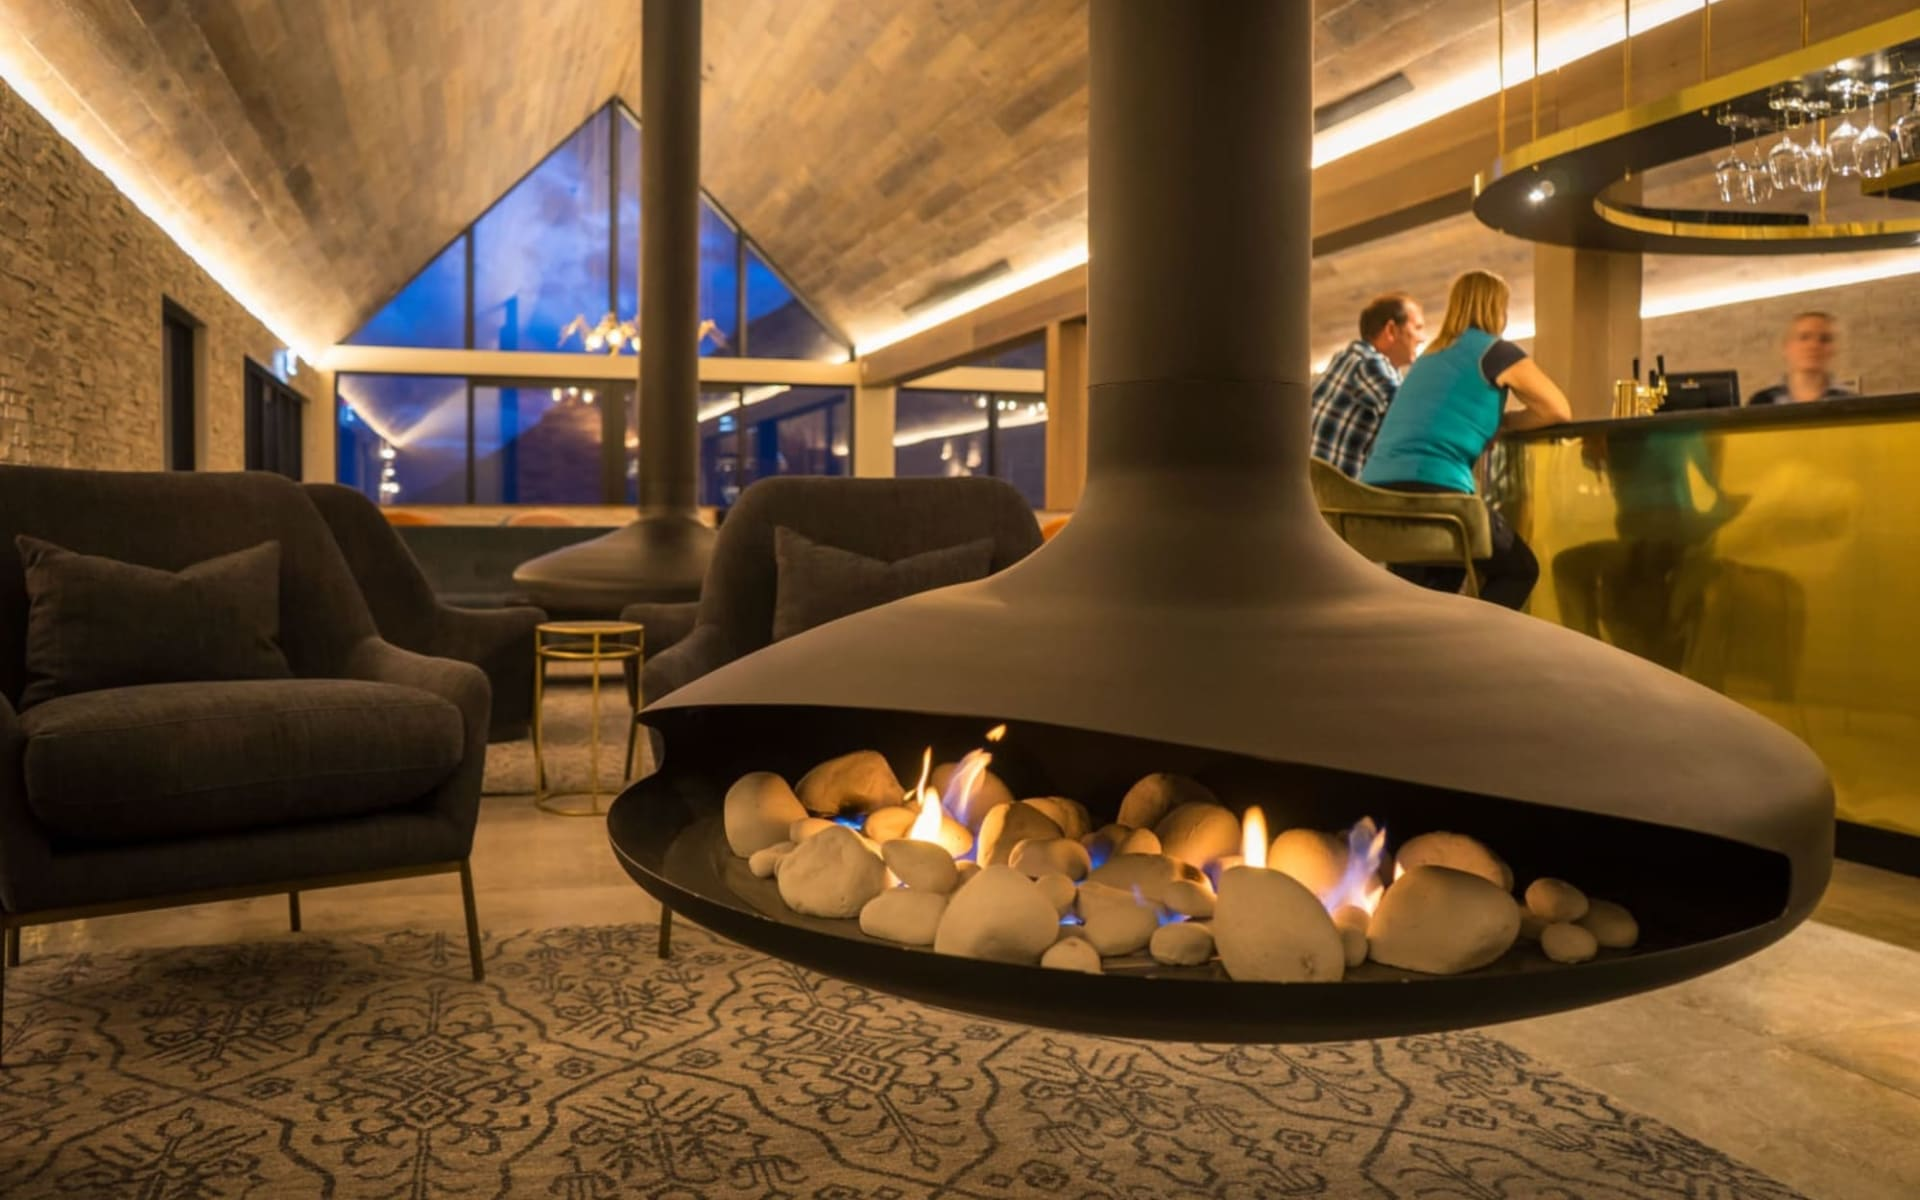 Kamana Lakehouse in Queenstown:  New fireplace